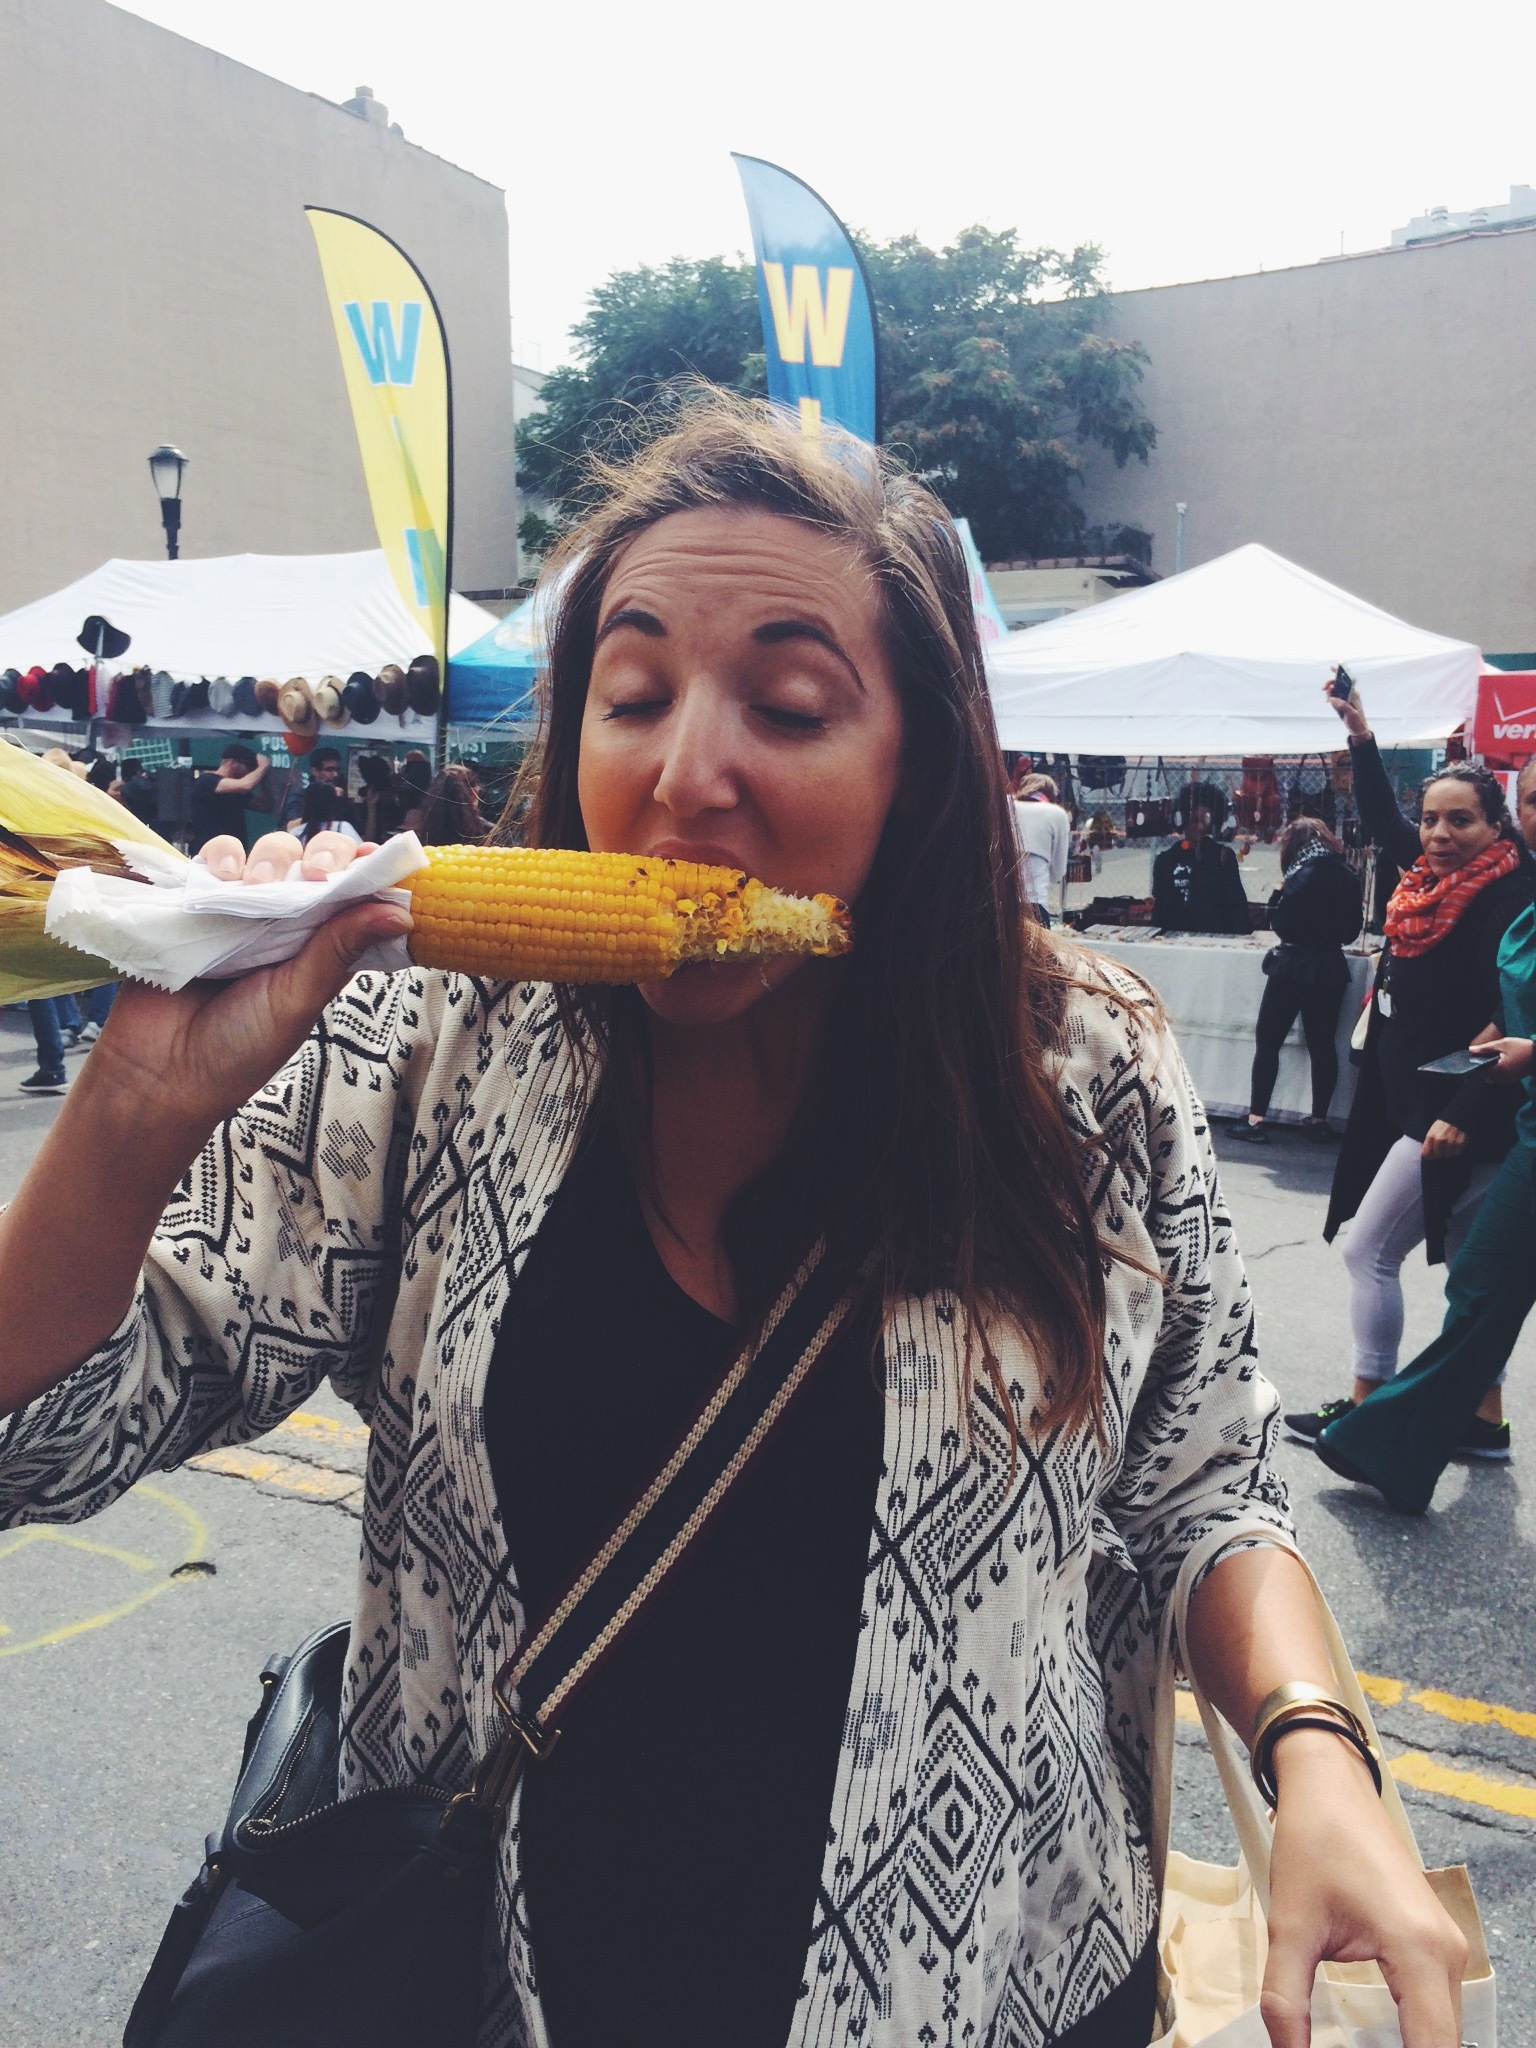 This is my at a street fair in NYC while I was pregnant with Mila.